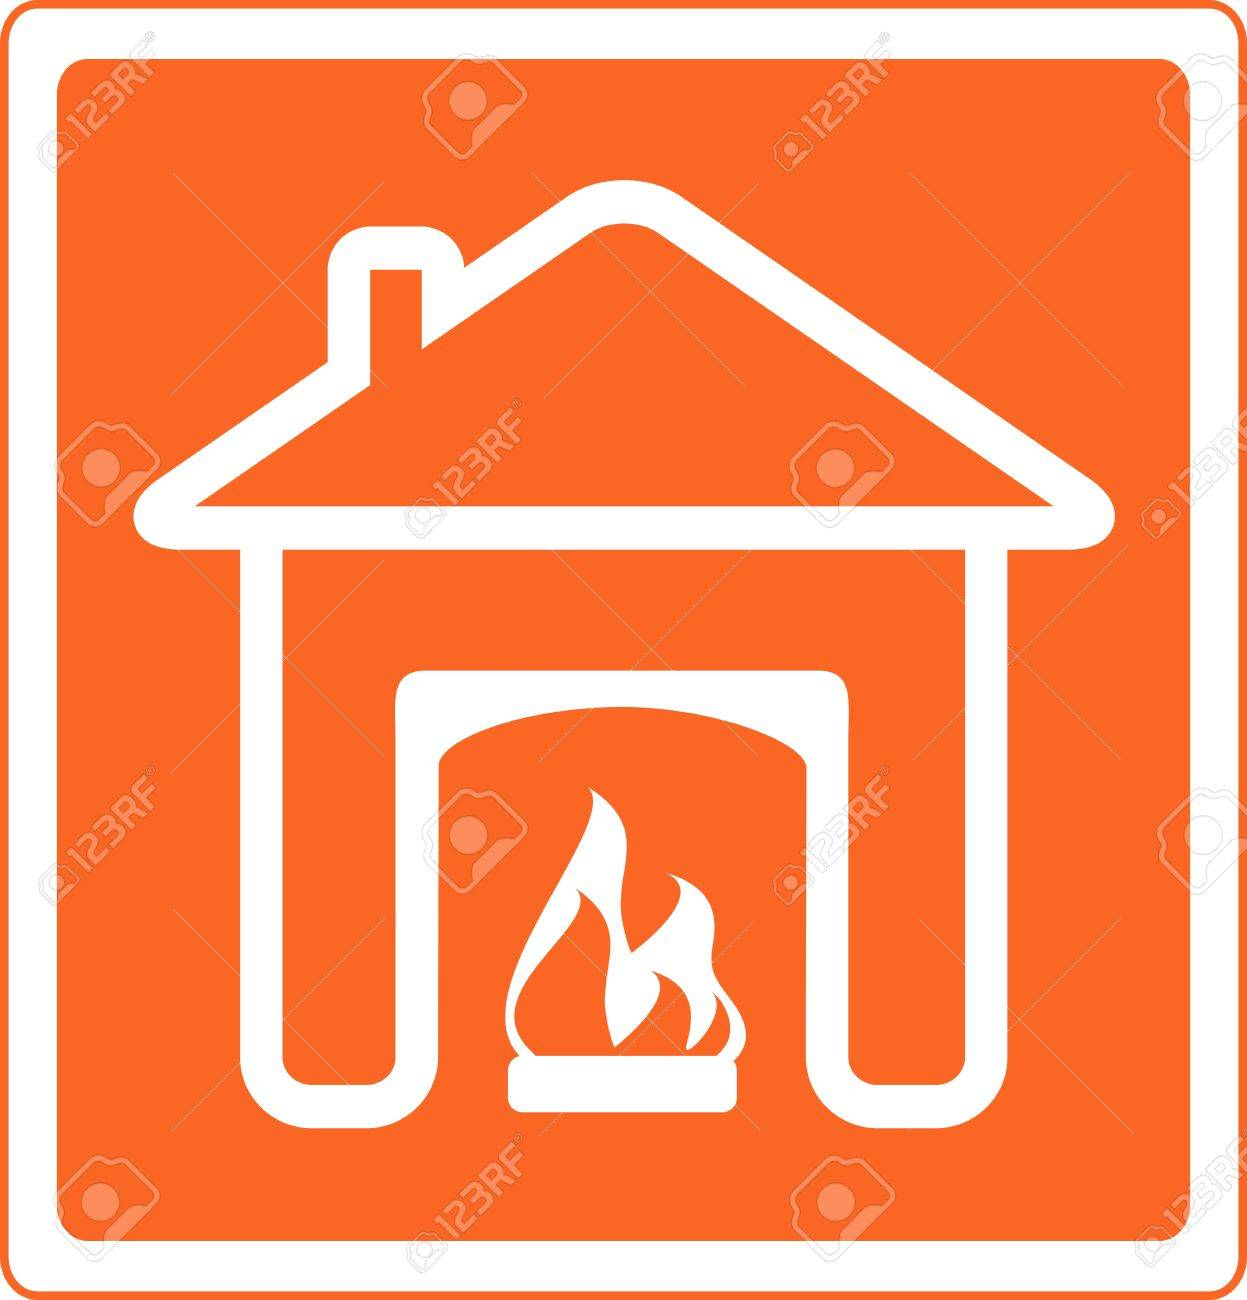 red sign of fireplace in house silhouette  symbol of hearth and home Stock Vector - 12800584